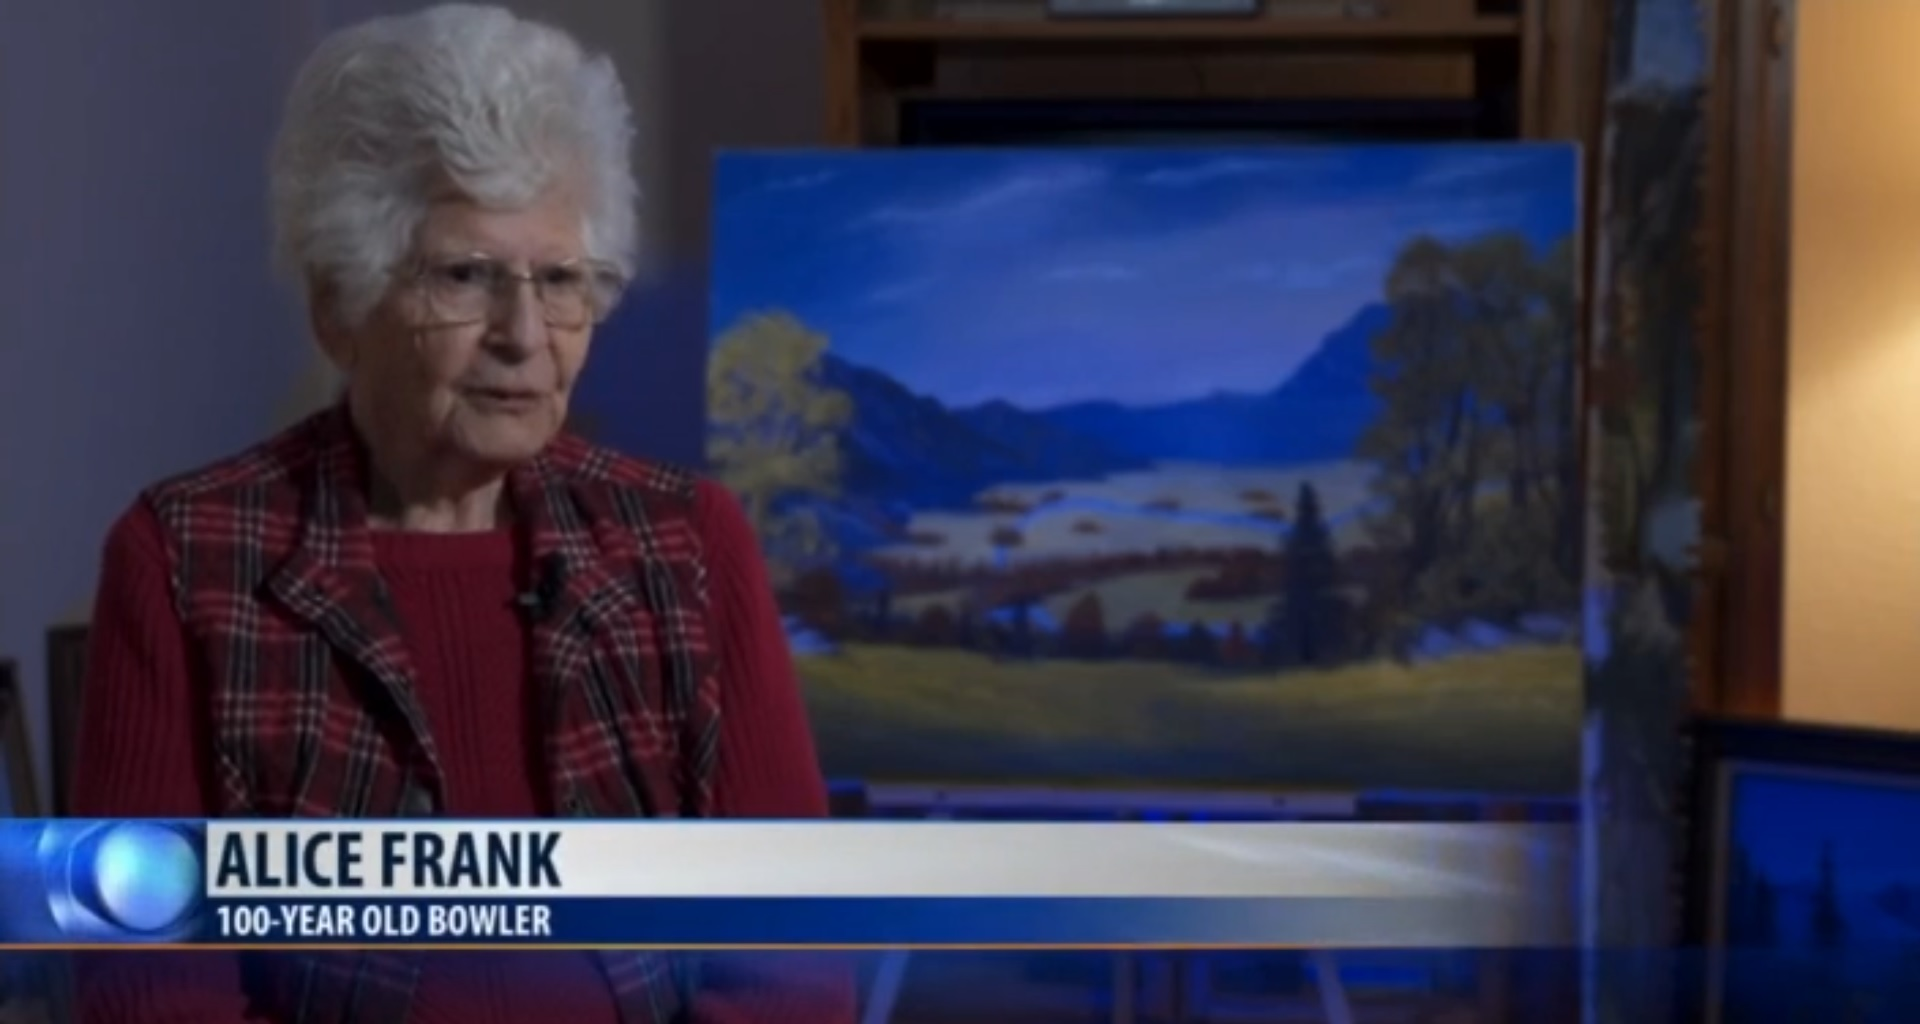 Alice Frank: 100 Year Old Bowler